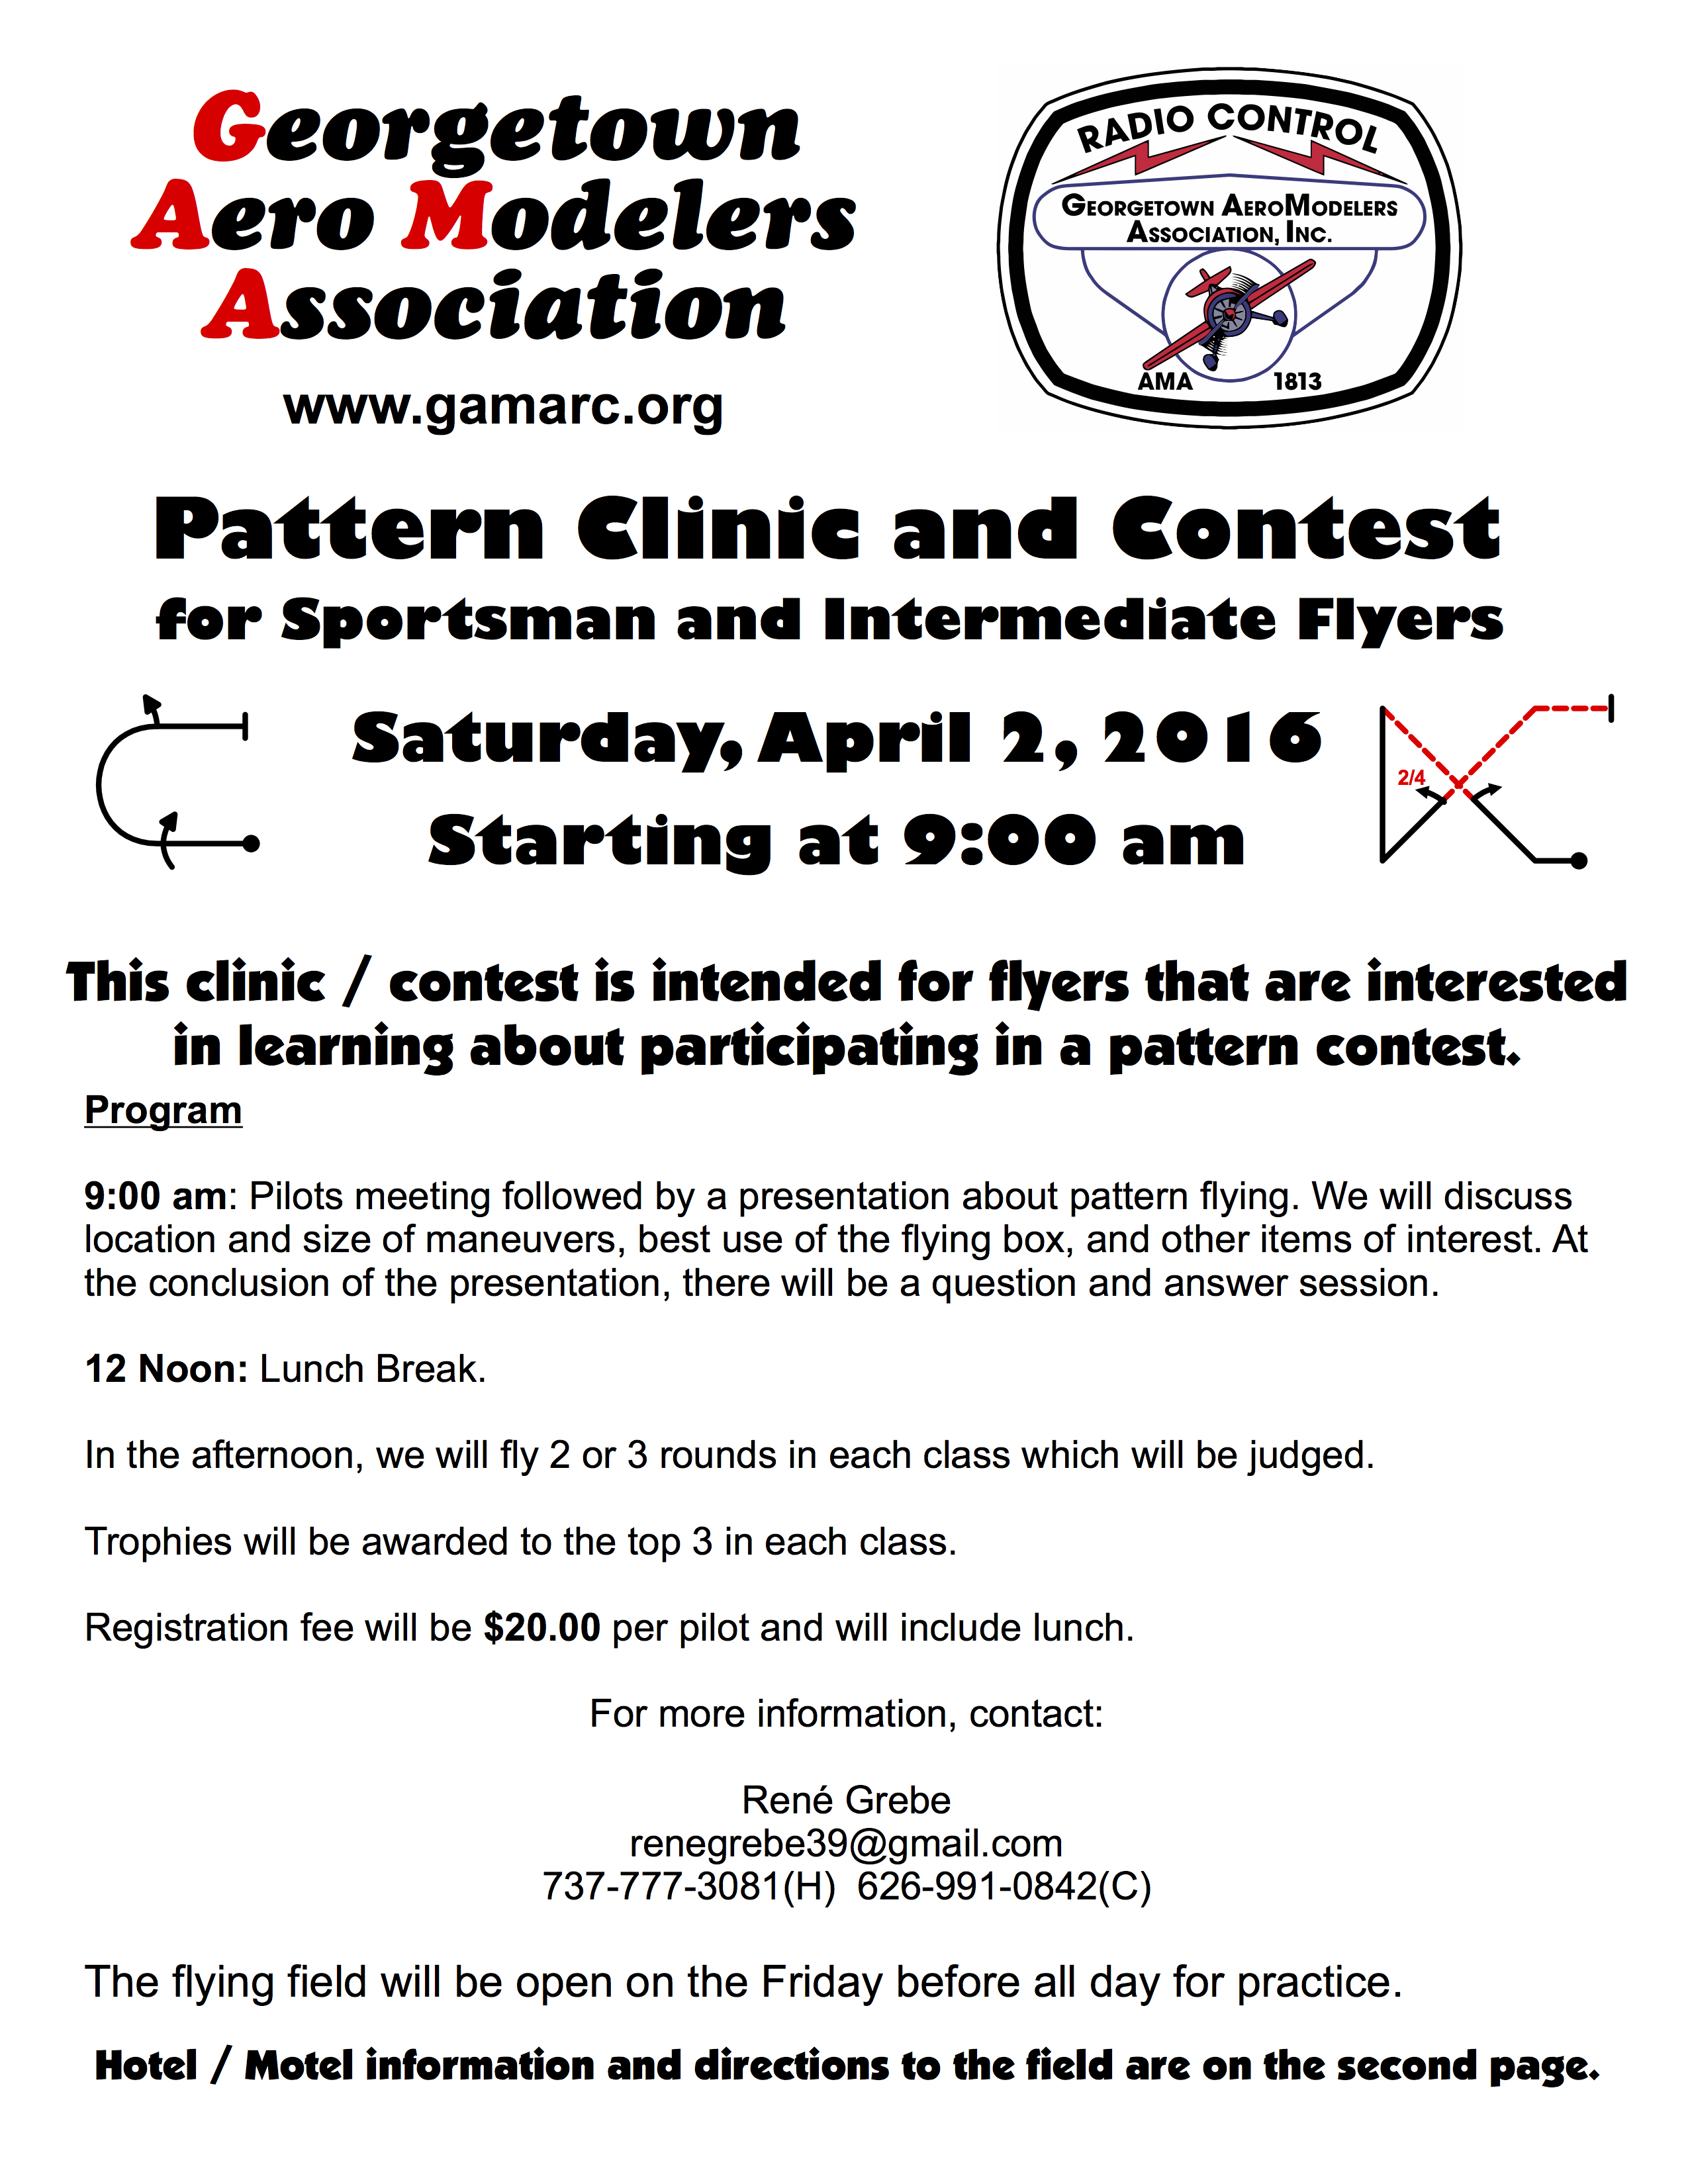 Gama_PatternClinic_20160402